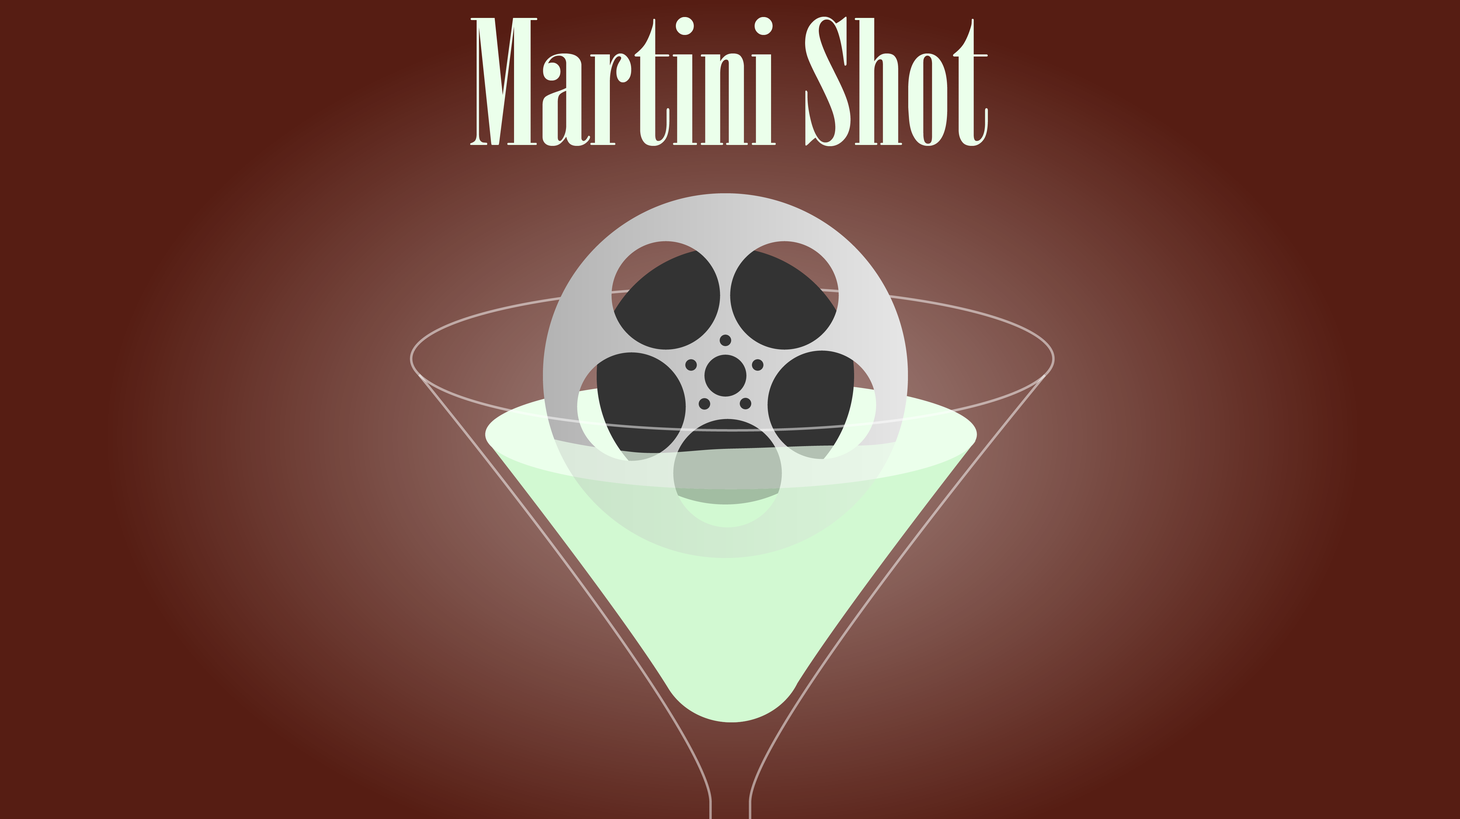 On today's Happy New Year Martini Shot, Rob Long talks about the Golden Globes, fifth grade math tests, and North Korean dictator Kim Jong Il...